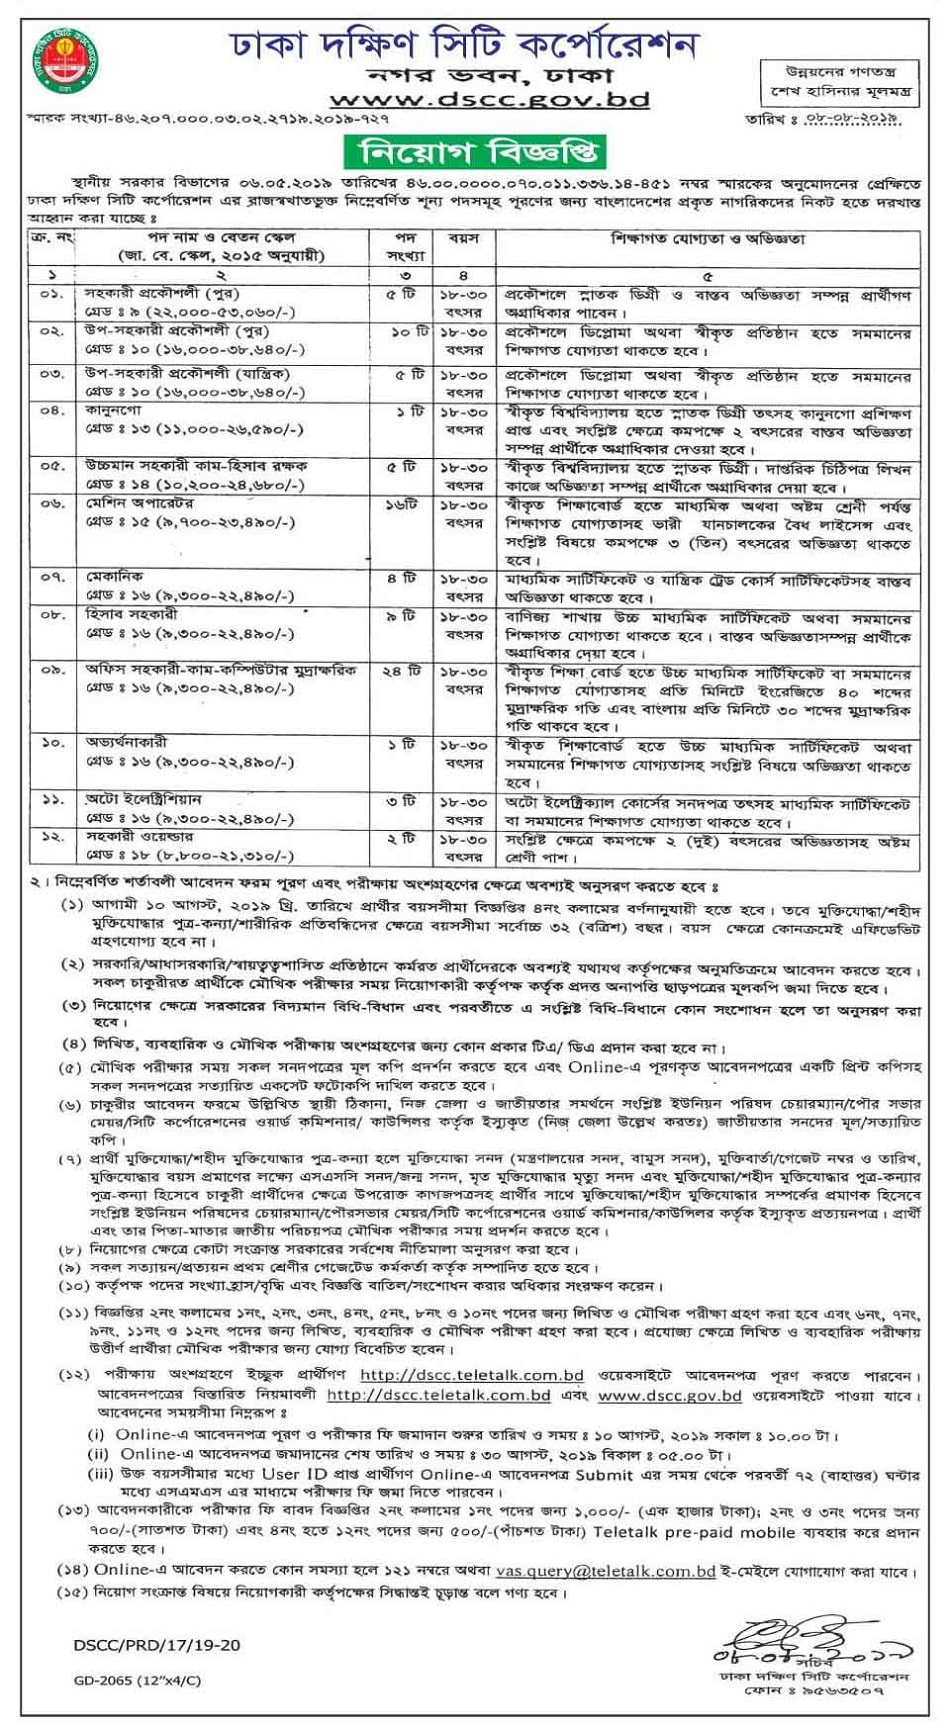 Dhaka South City Corporation Job Circular 2019